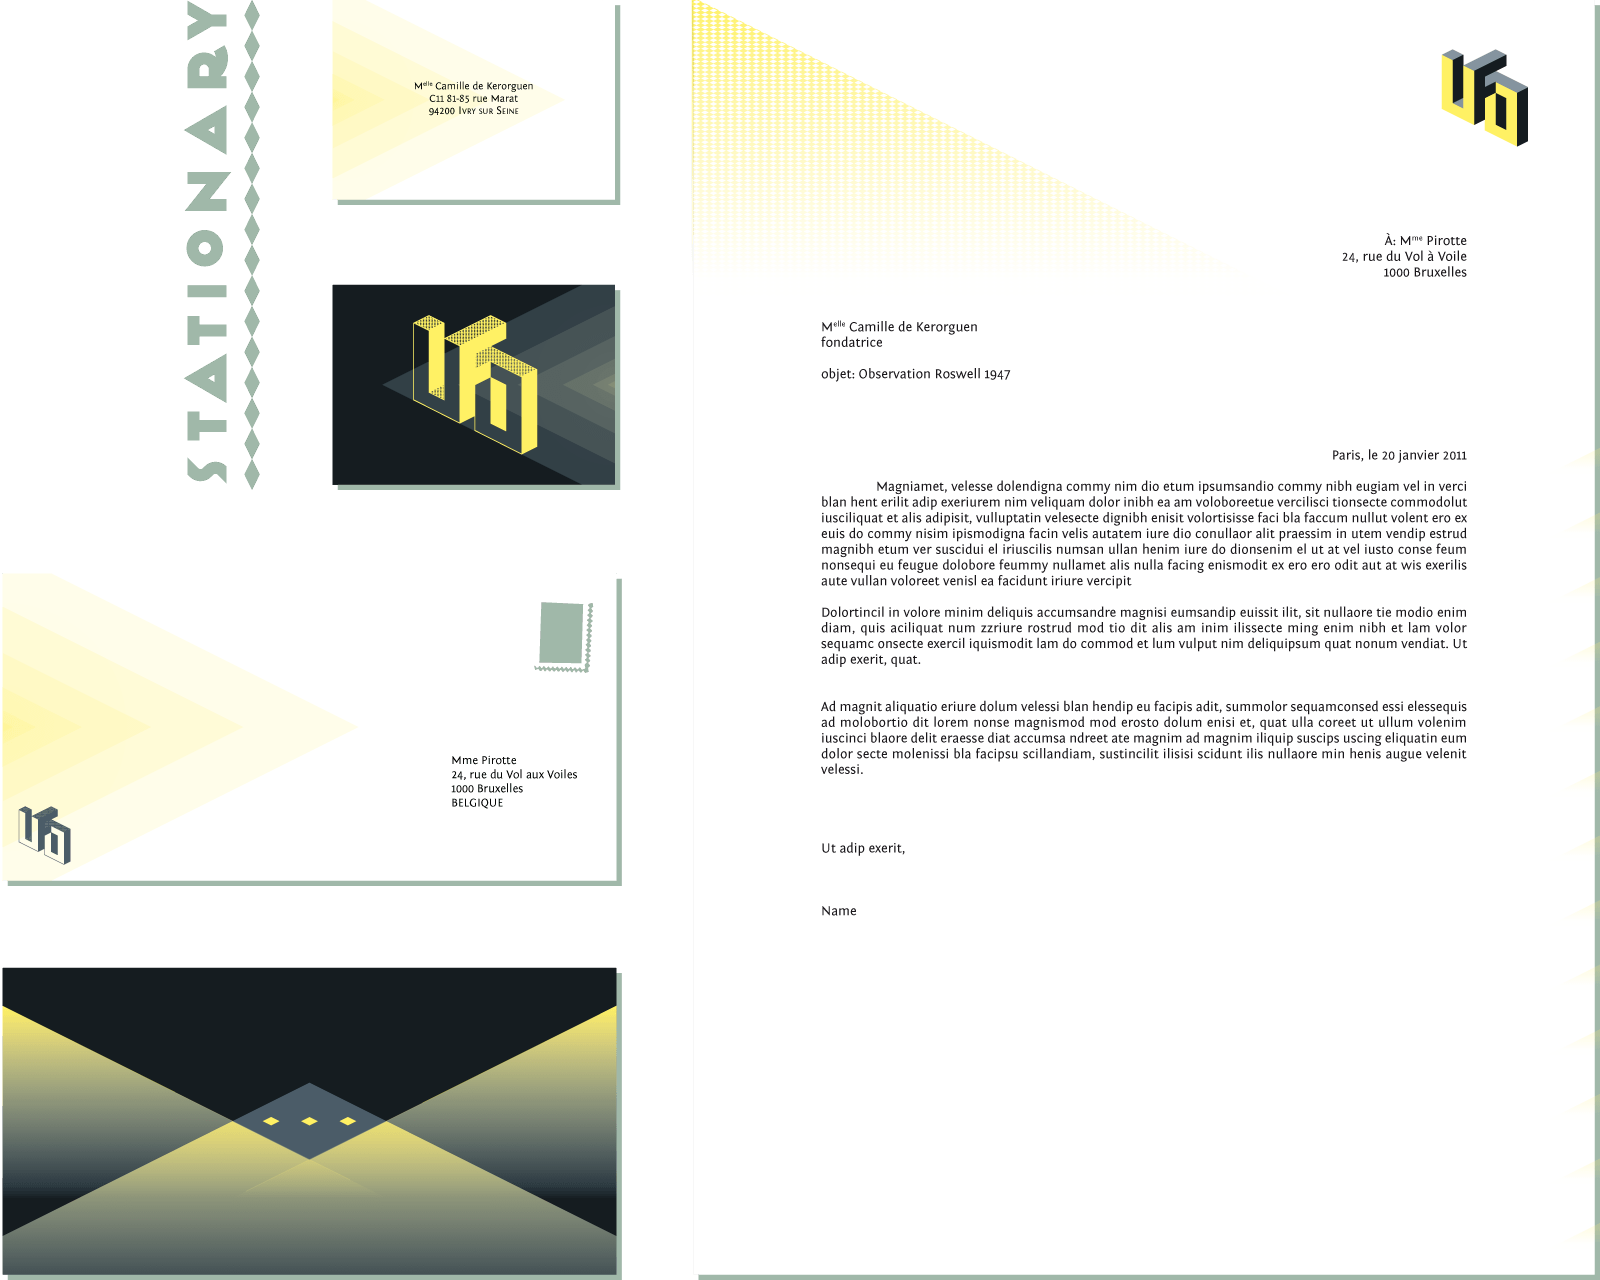 Stationary for a school assignement to create the whole visual identity for a fictive worker in the career field of our choice, here an ufologist.